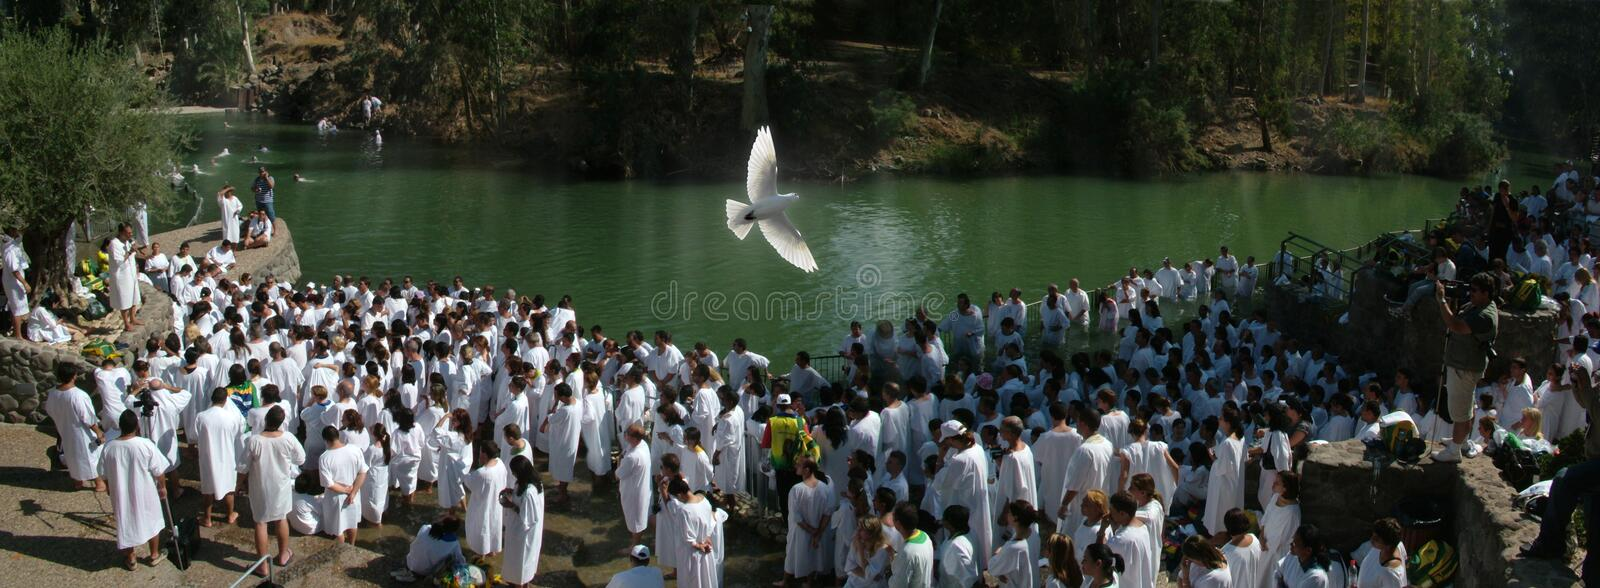 Thousand of Believers preparing to Baptism royalty free stock images